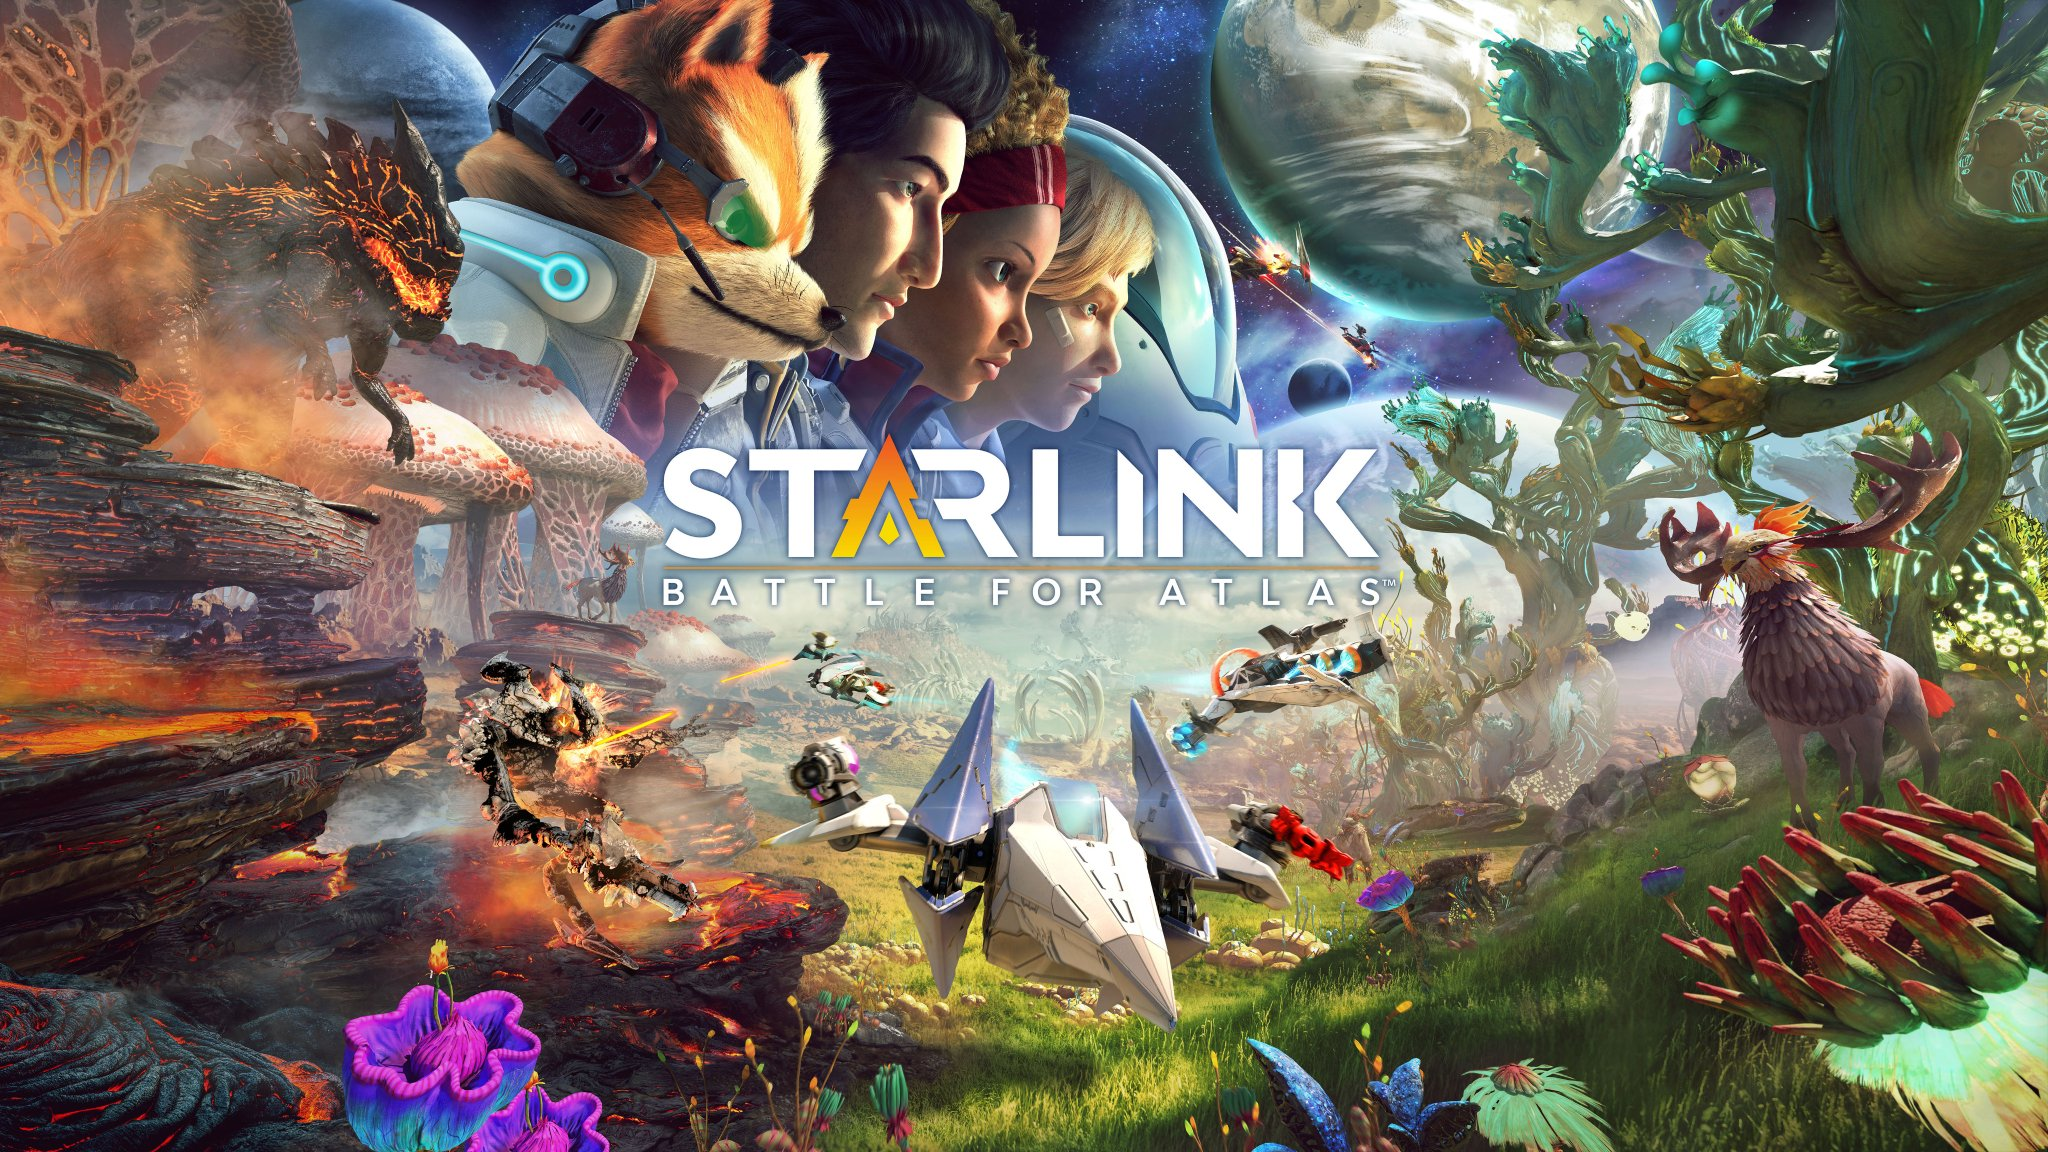 STARLINK: BATTLE FOR ATLAS AVAILABLE NOW